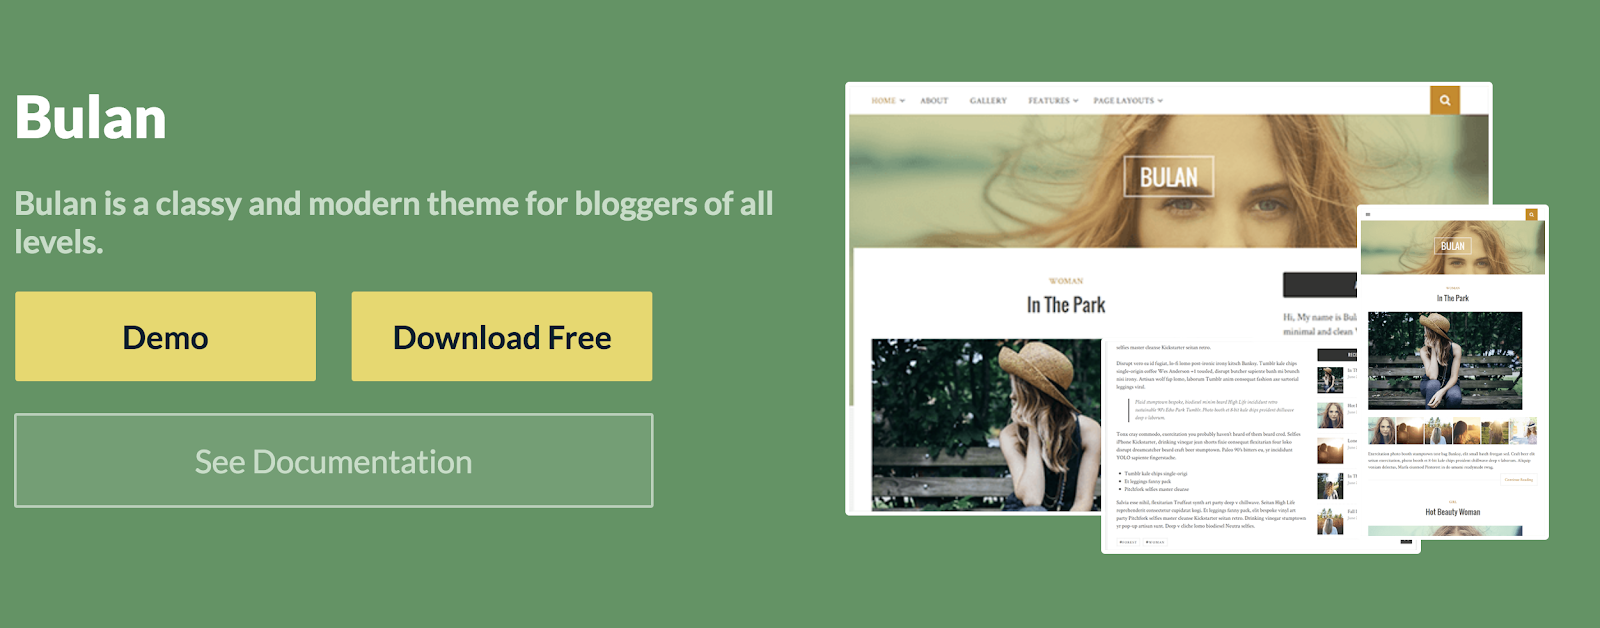 bulan-wordpress-theme